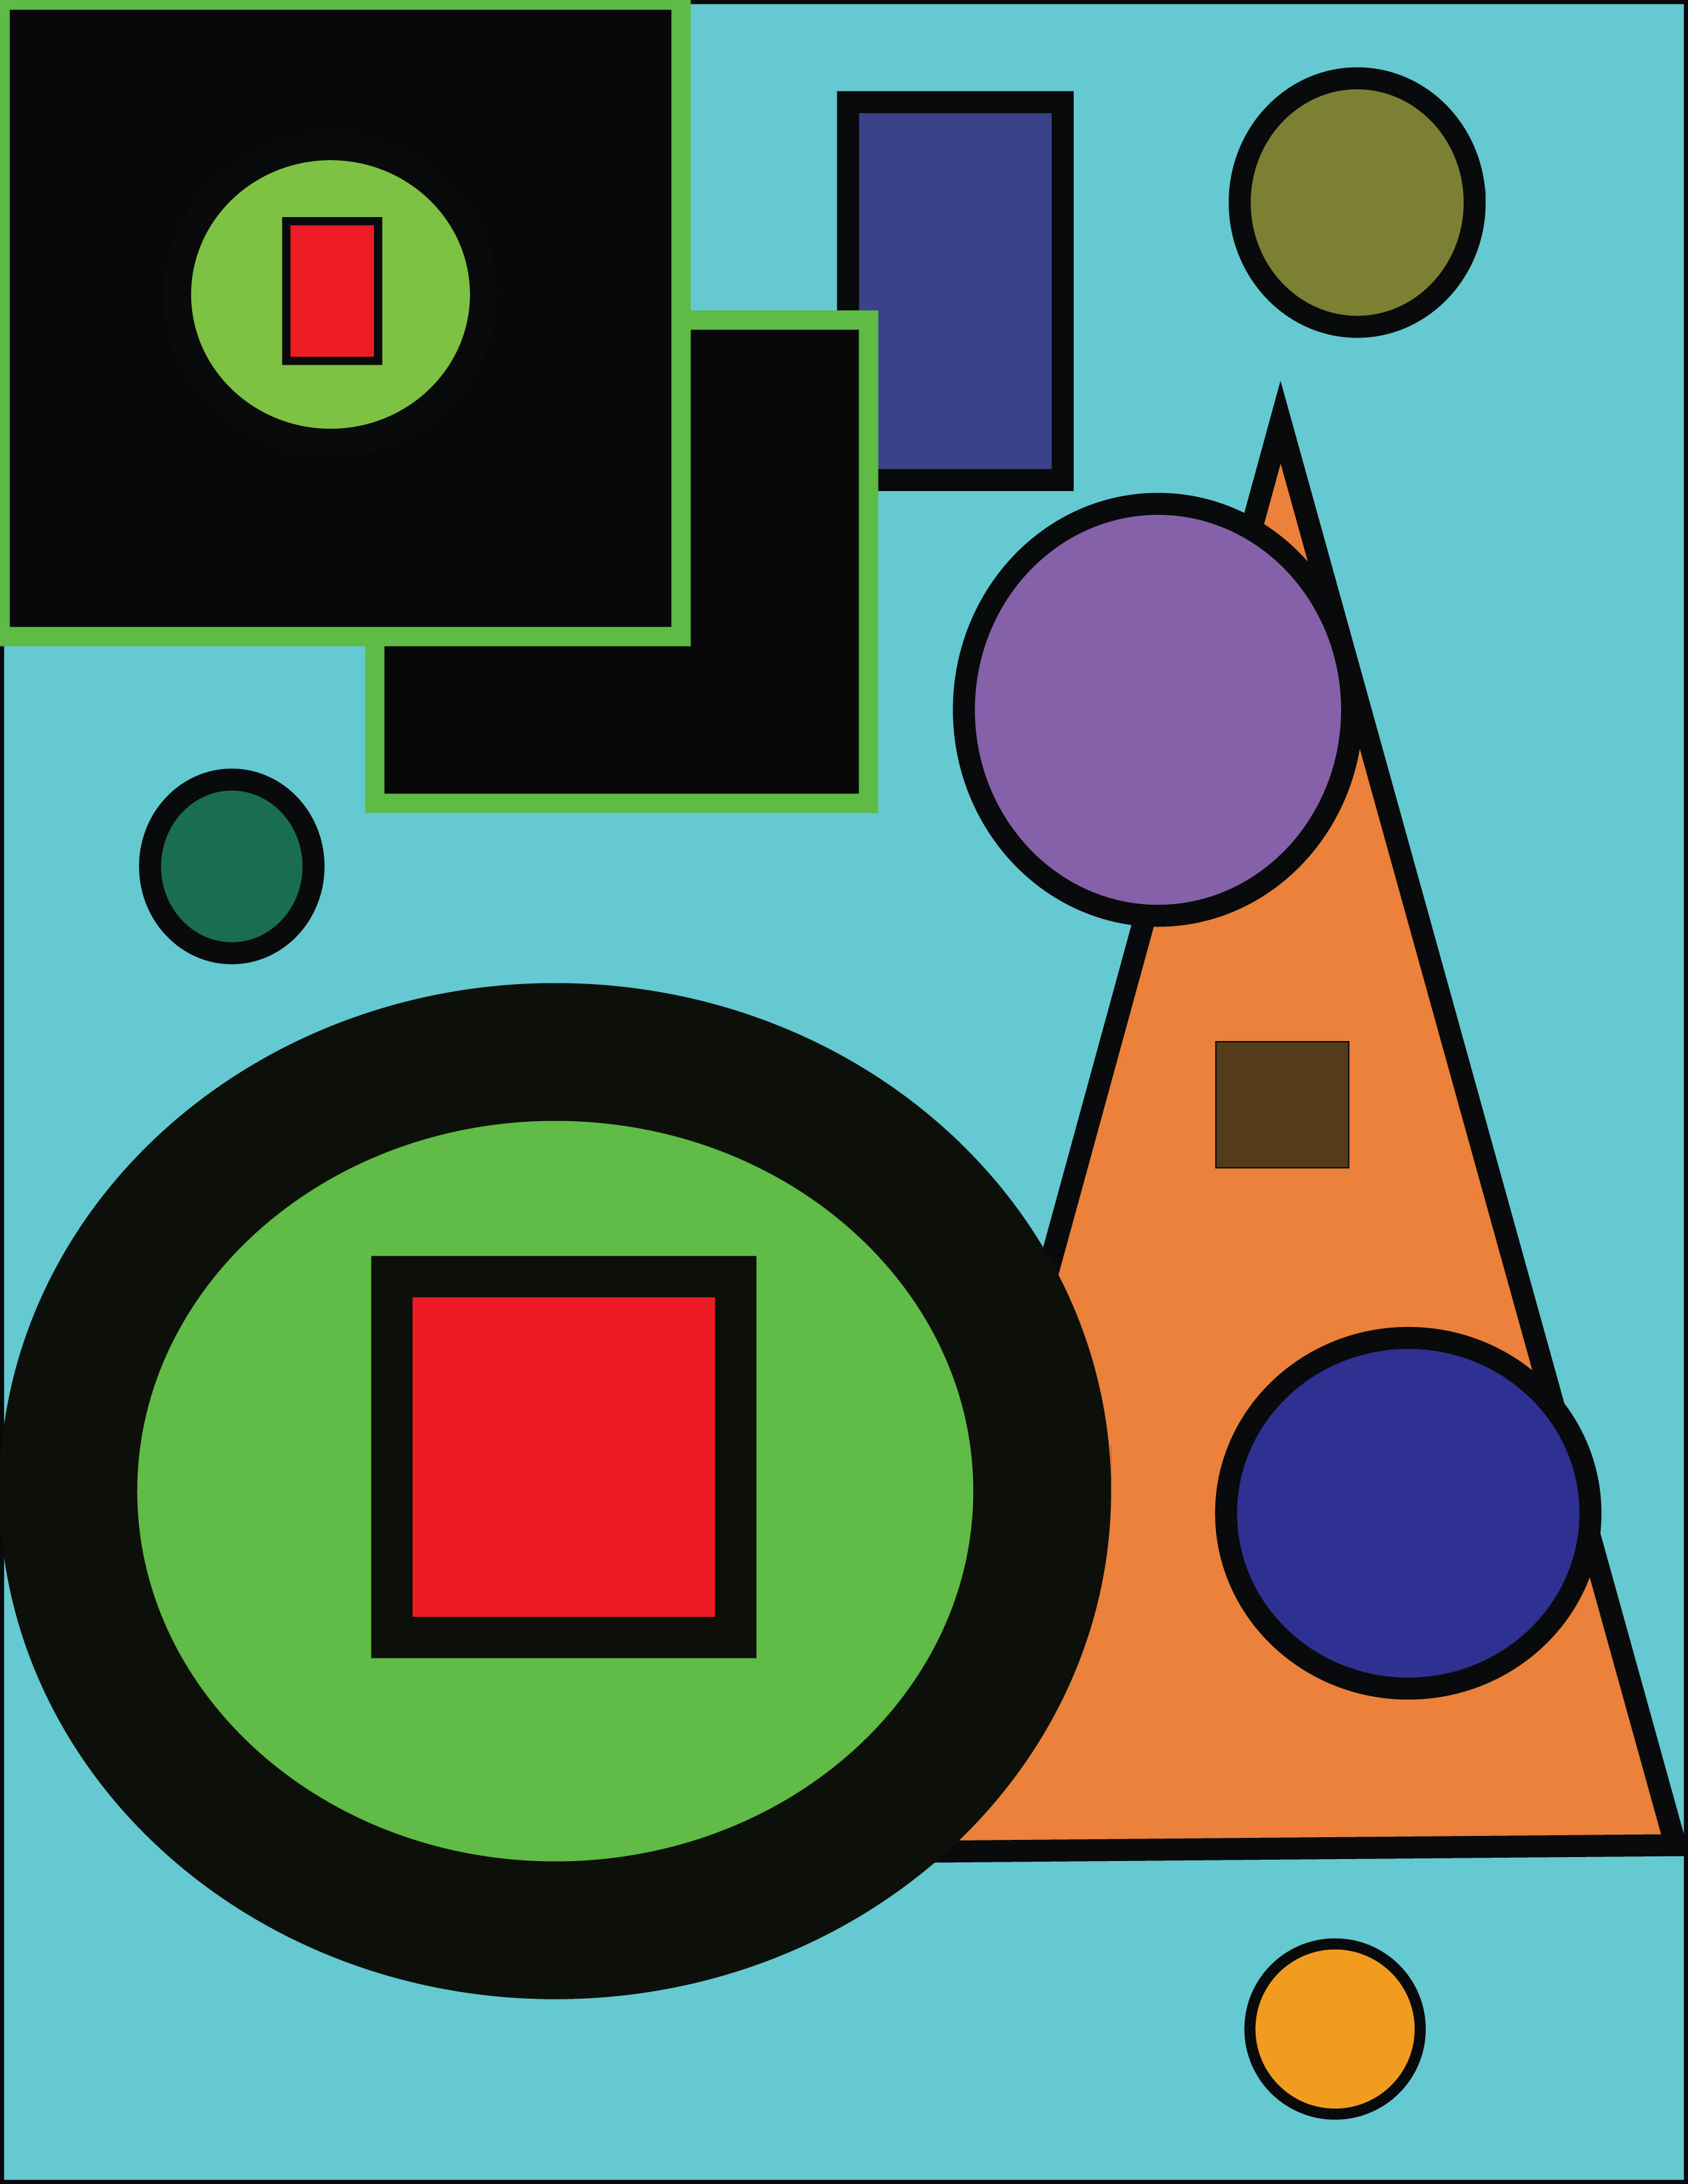 Shapes Designs Art : Simple shape designs images basic design elements